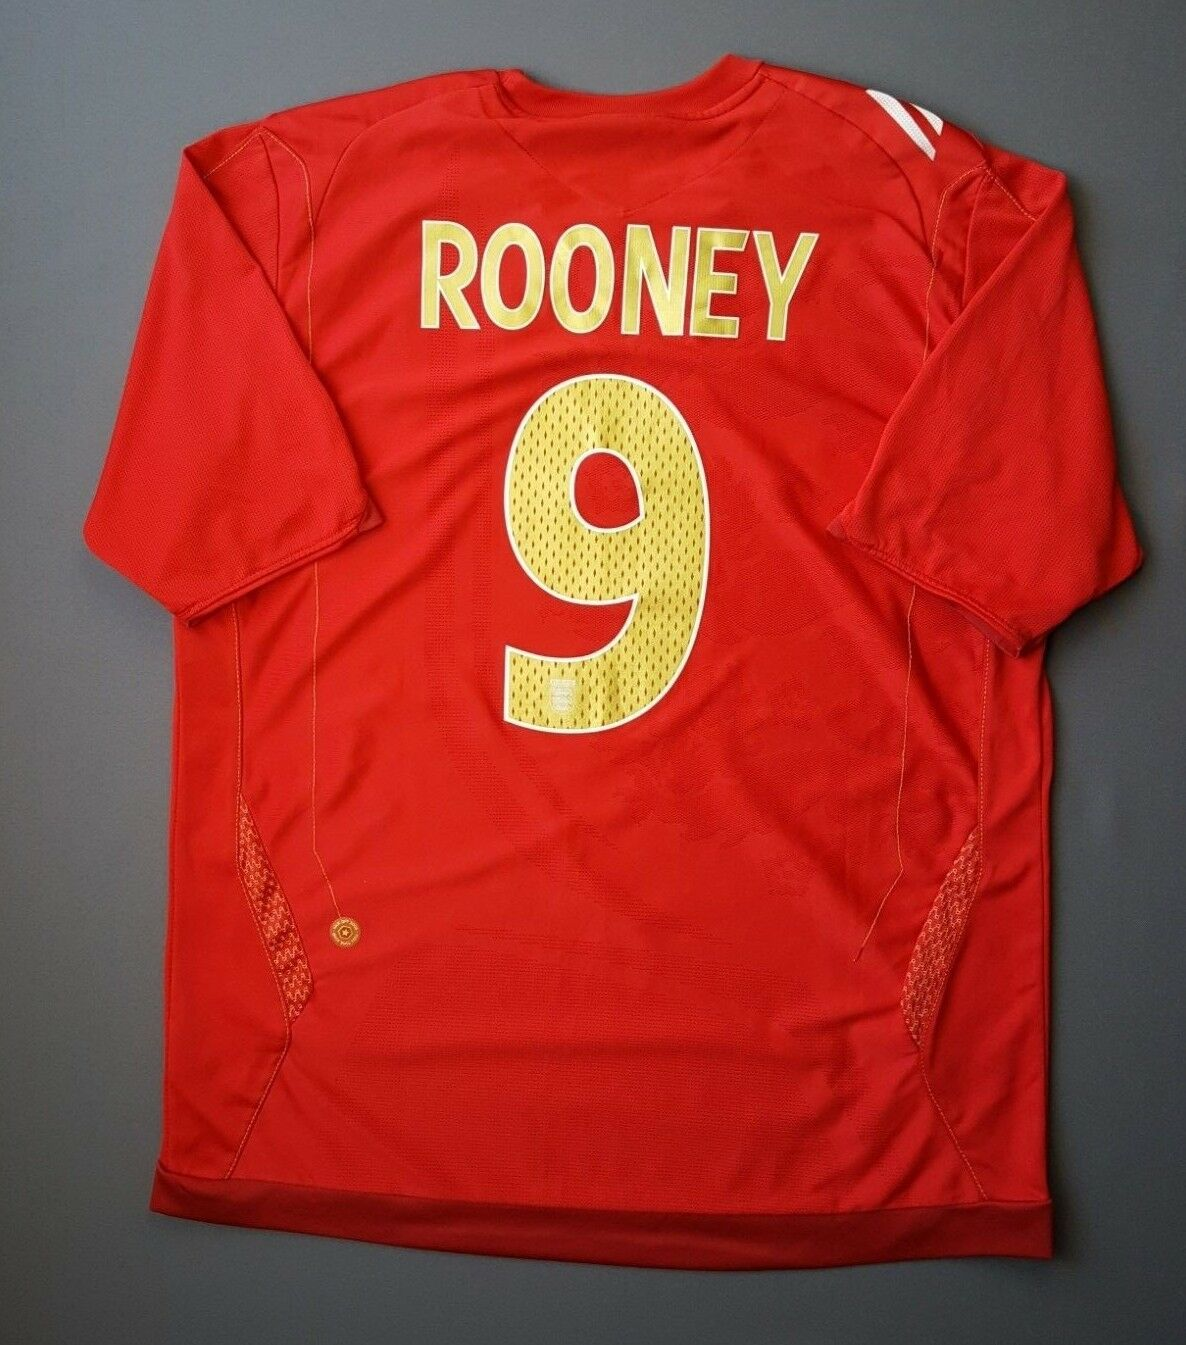 5 5 Rooney England soccer jersey 2006 2008 away shirt LARGE football Umbro